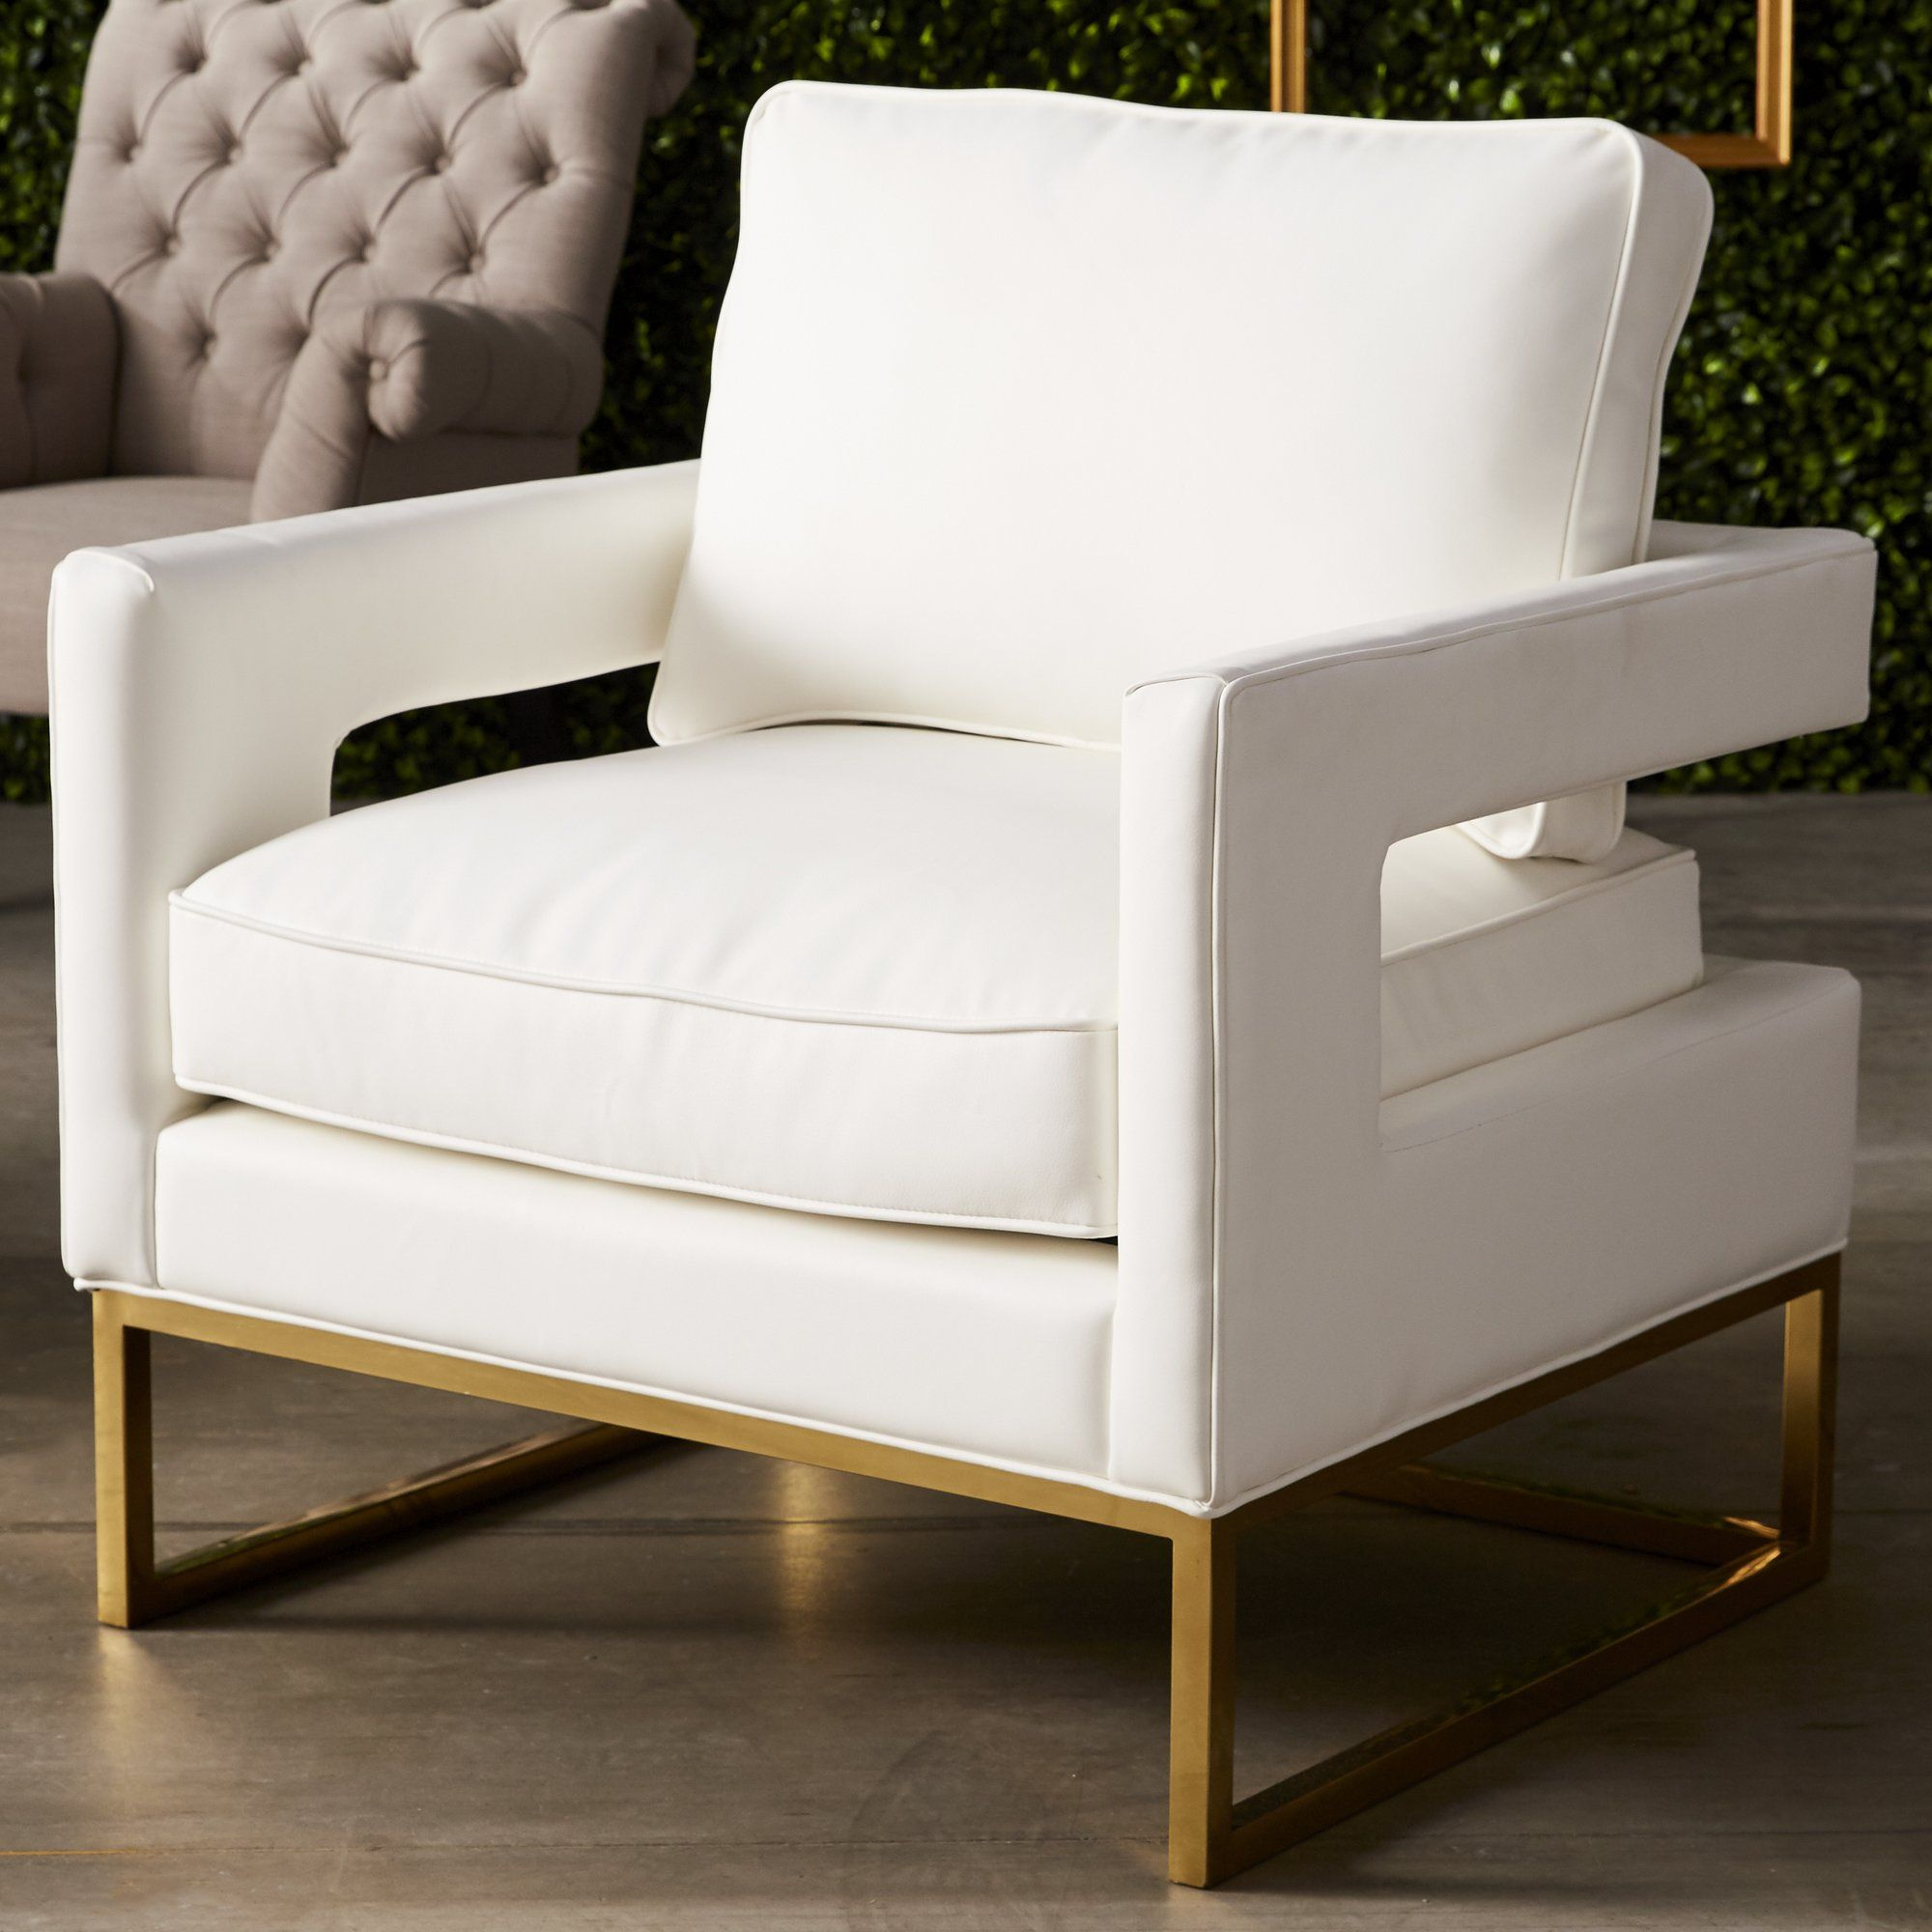 Aloisio Genuine Leather Upholstery Armchair | BLACK WHITE GOLD ...